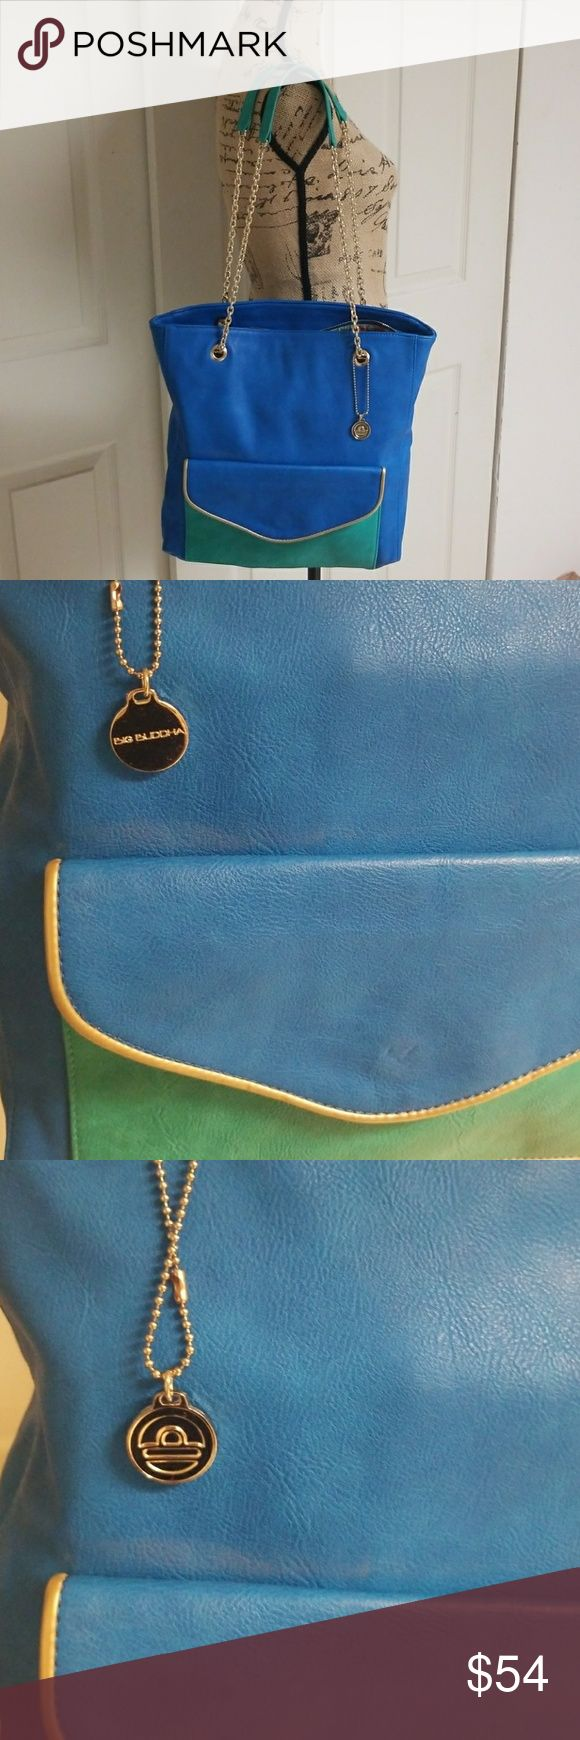 Big Buddha Bag Blue and green with gold lining  Excellent condition inside and out!  Good chain straps Big Buddha Bags